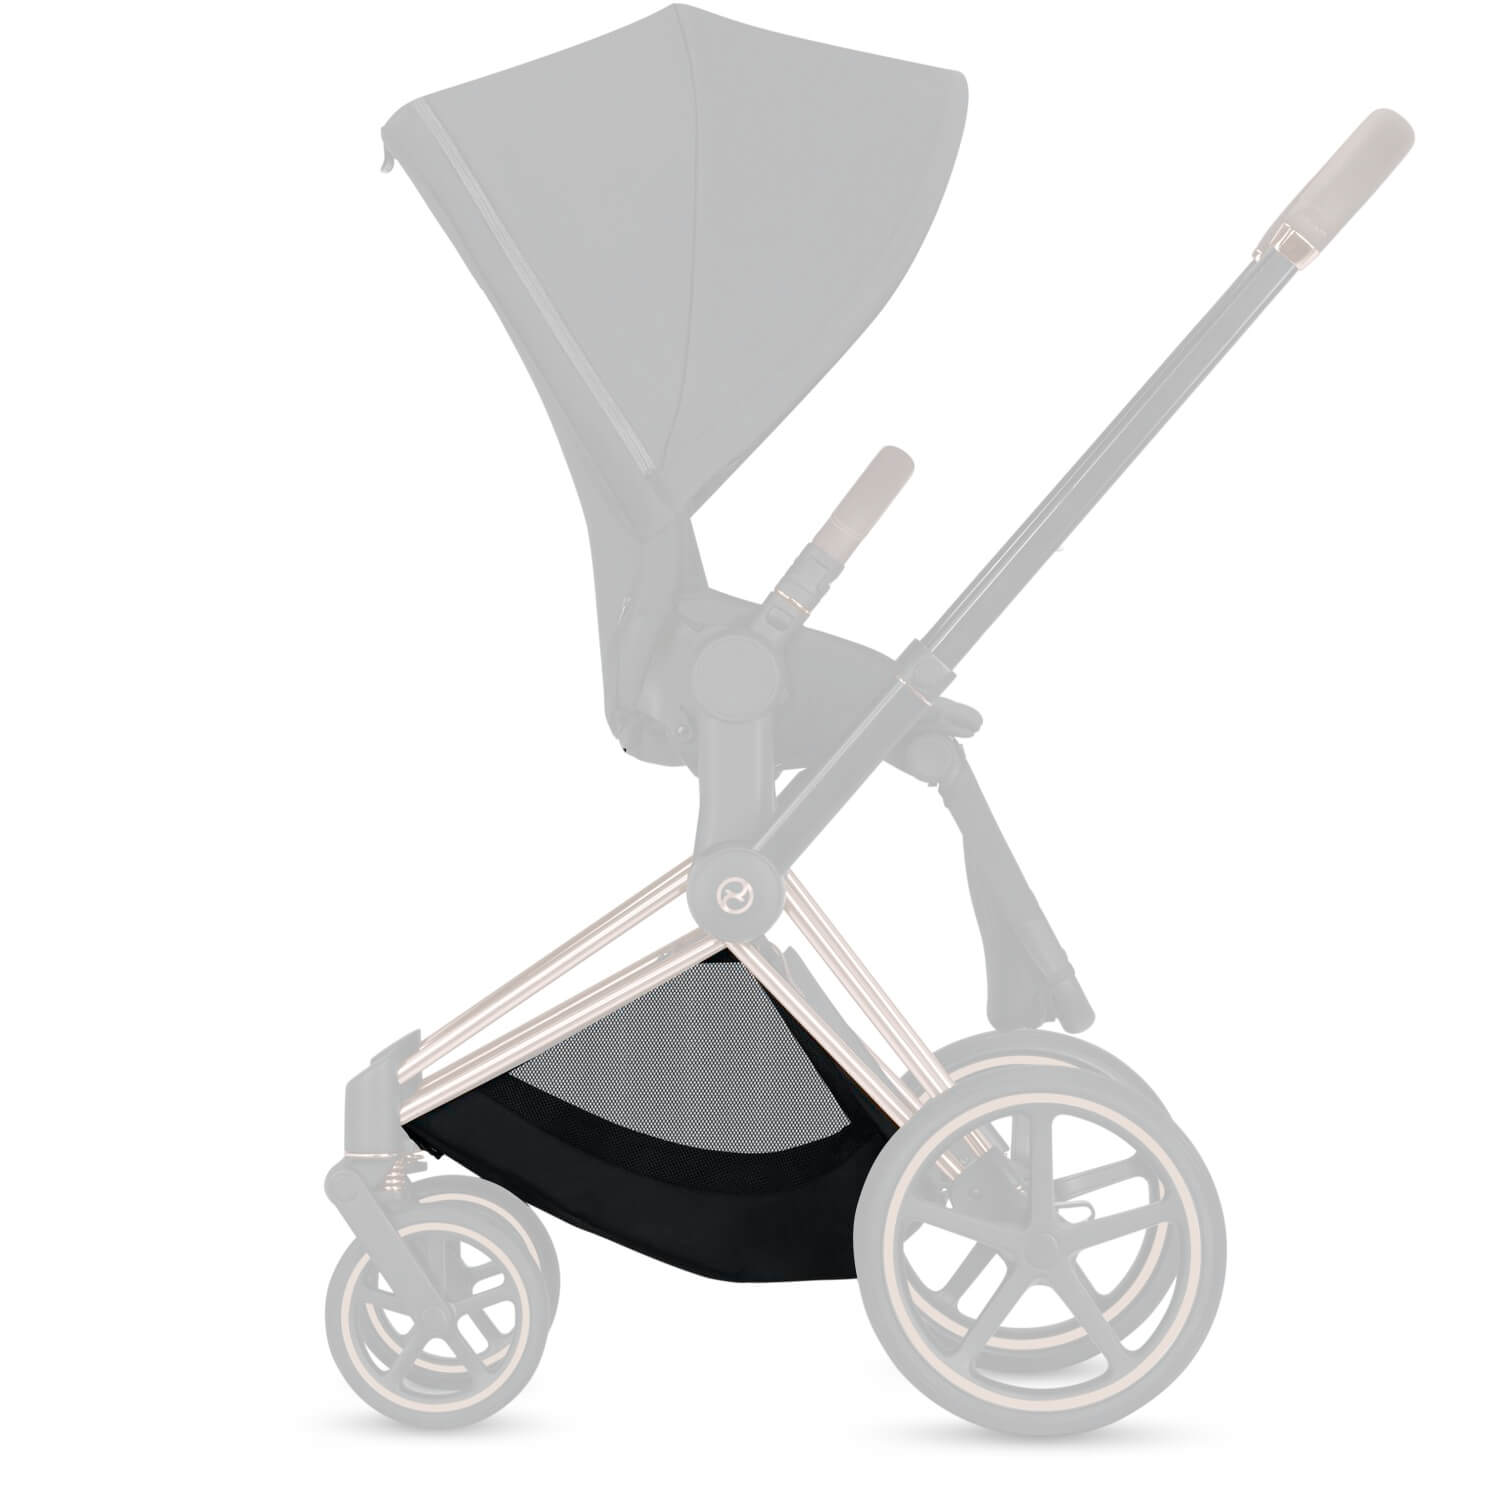 Cybex Stroller Support Cybex Shopping Basket For Priam Stroller Black